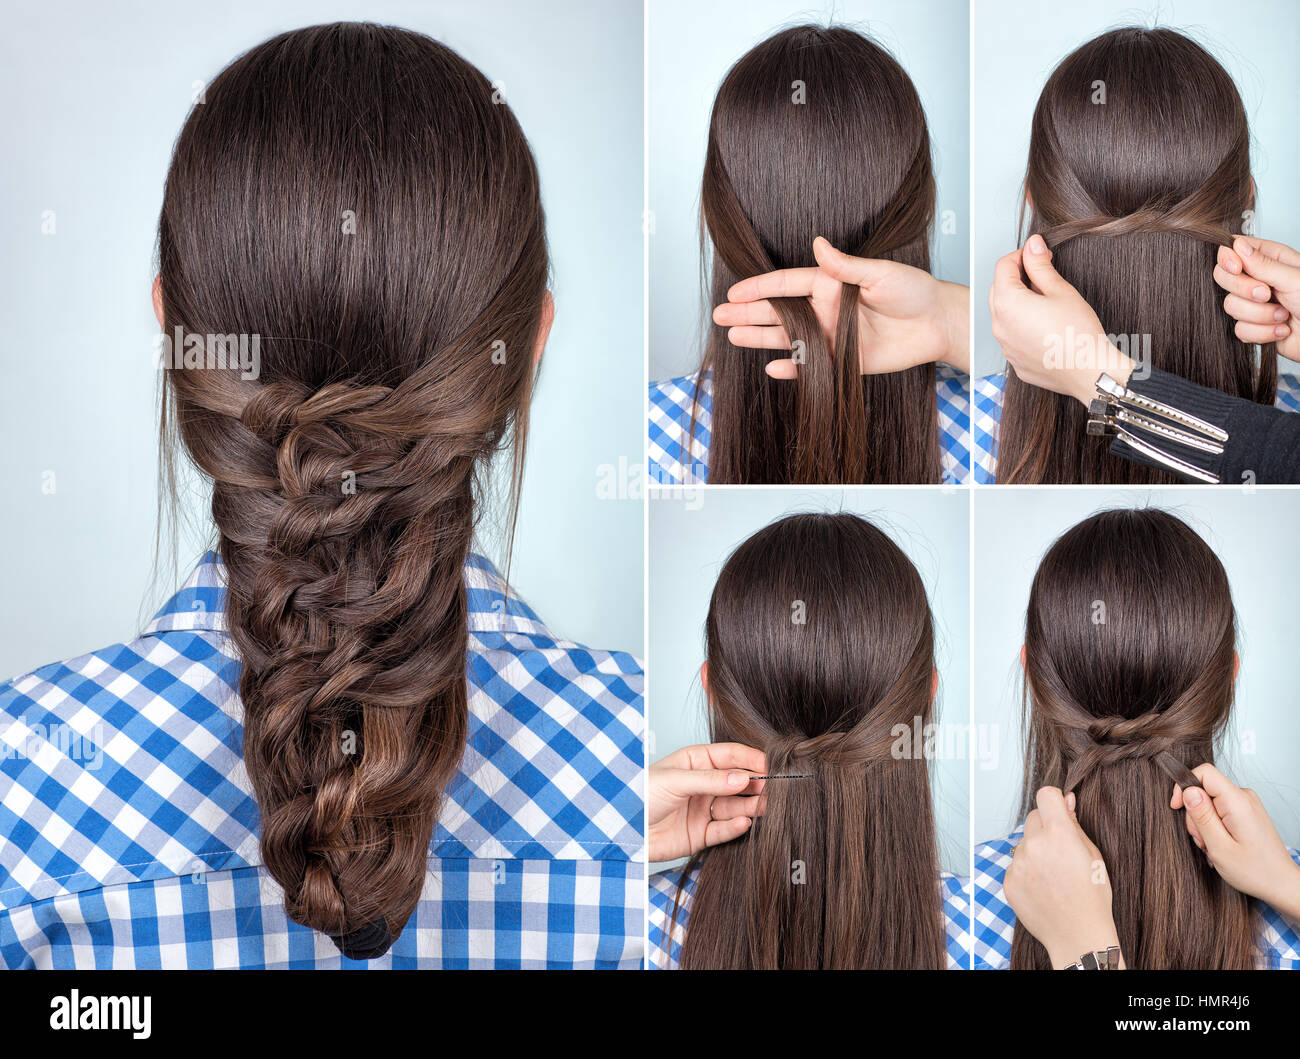 Simple Hairstyle High Resolution Stock Photography And Images Alamy